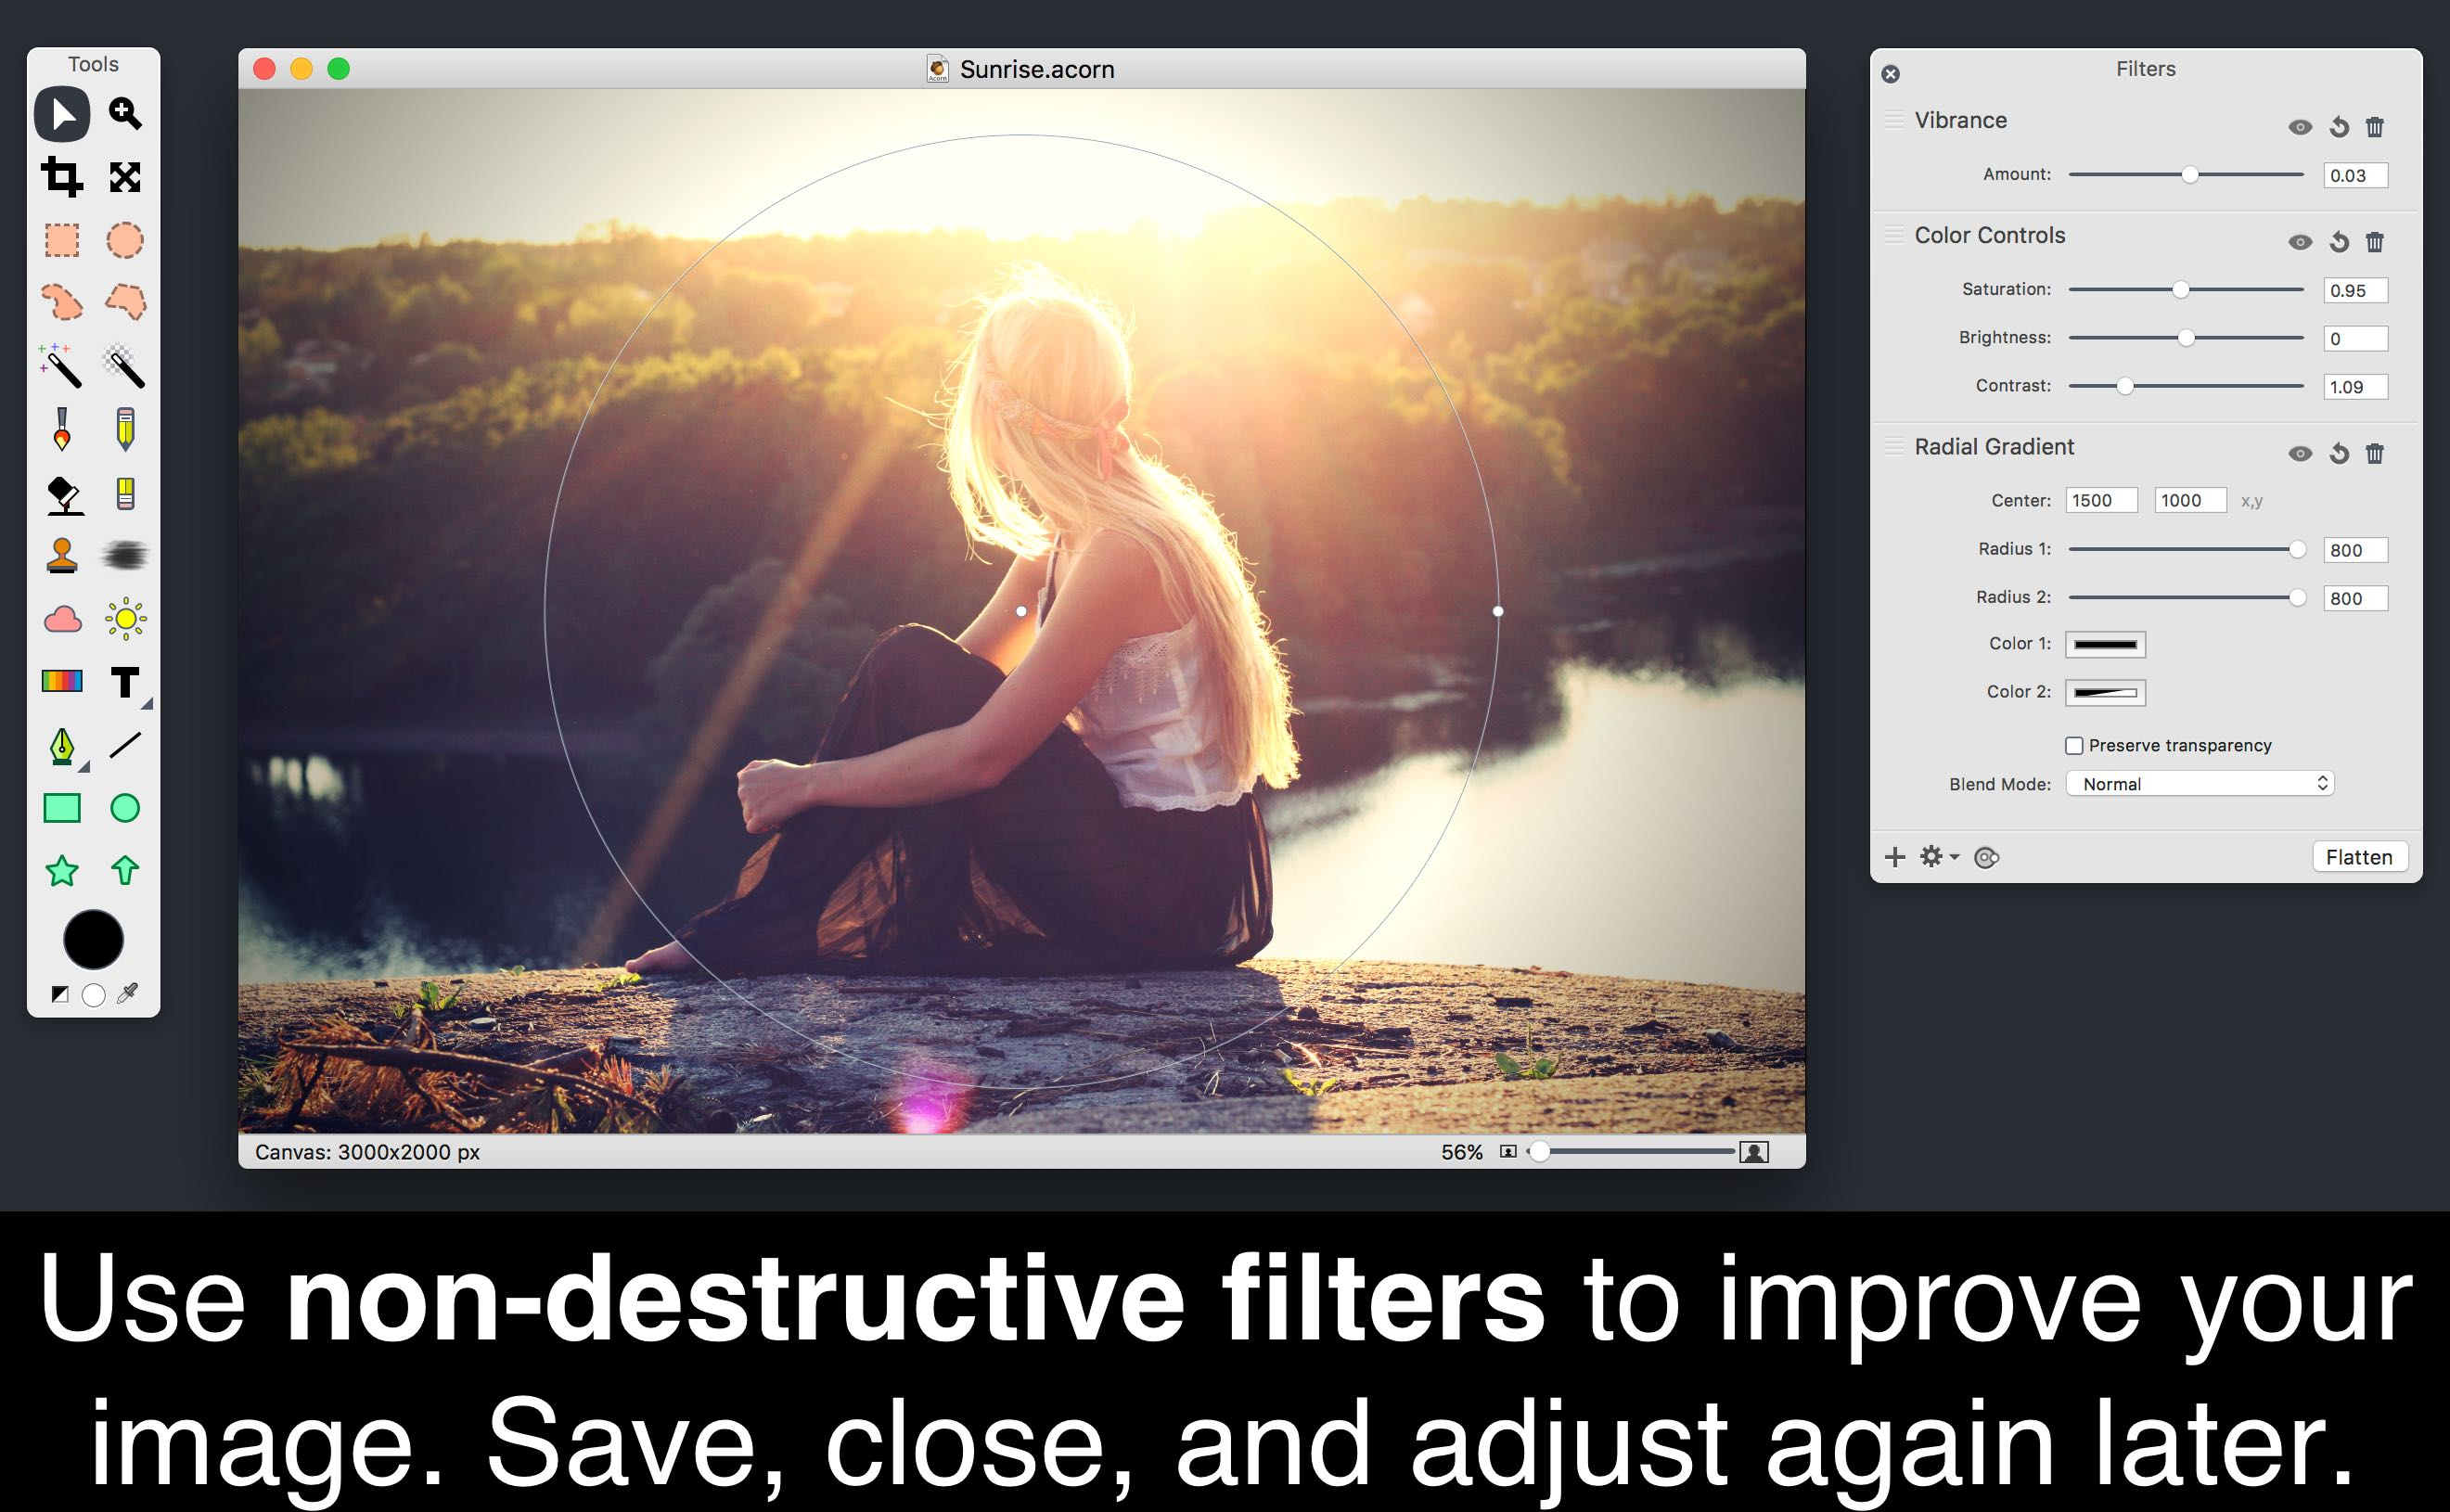 Photoshop 6 Acorn 6 Full Featured Photo Editor For The Mac